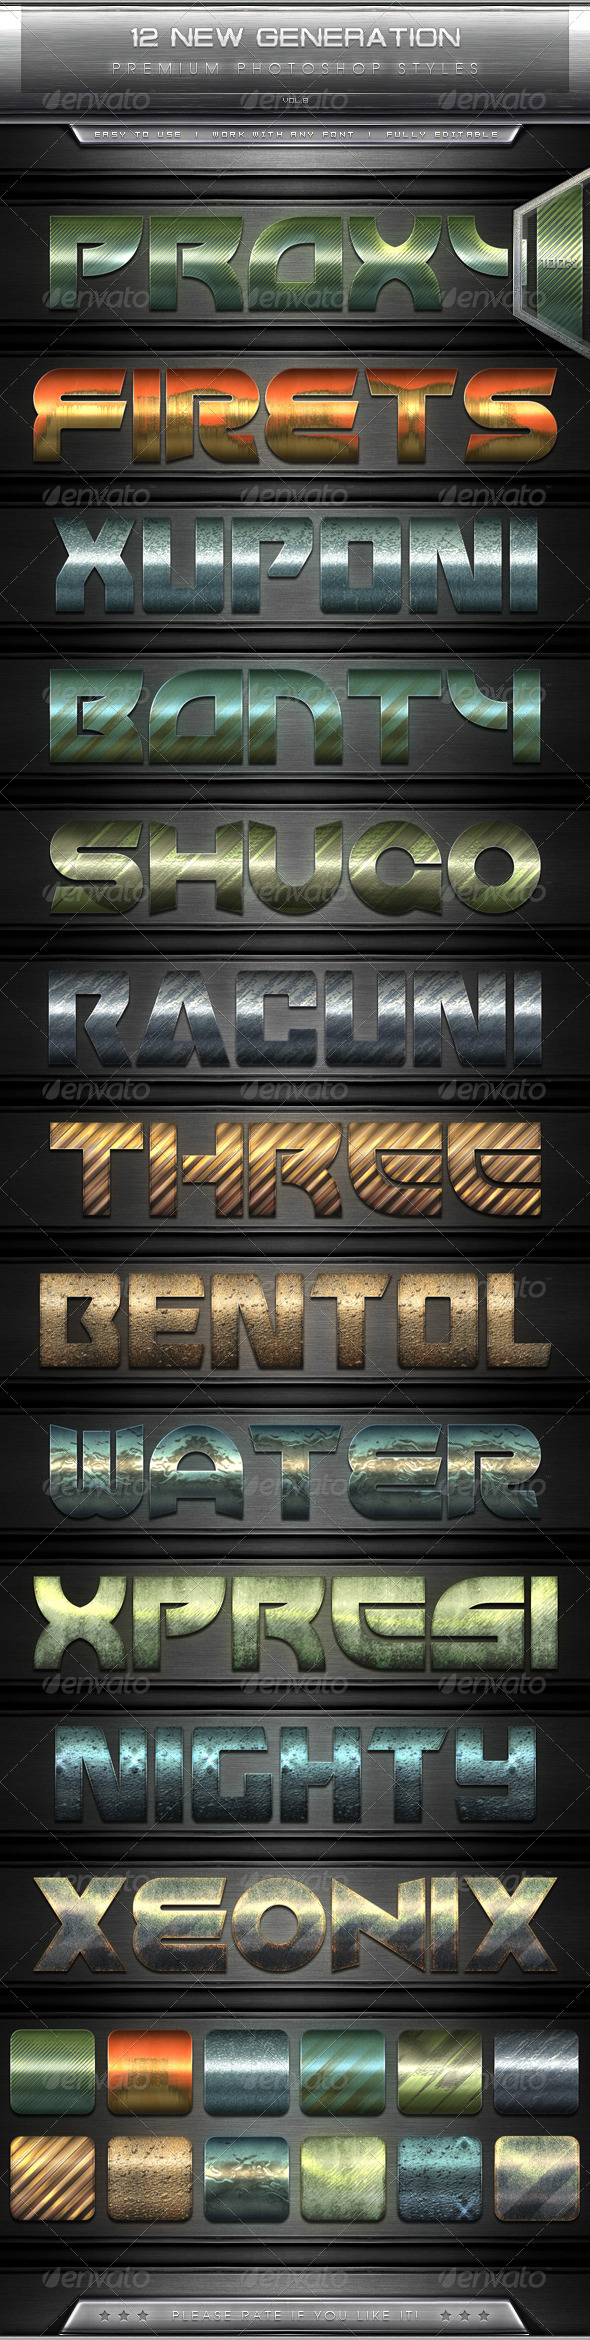 GraphicRiver 12 New Generation Text Effect Styles Vol.8 7822316